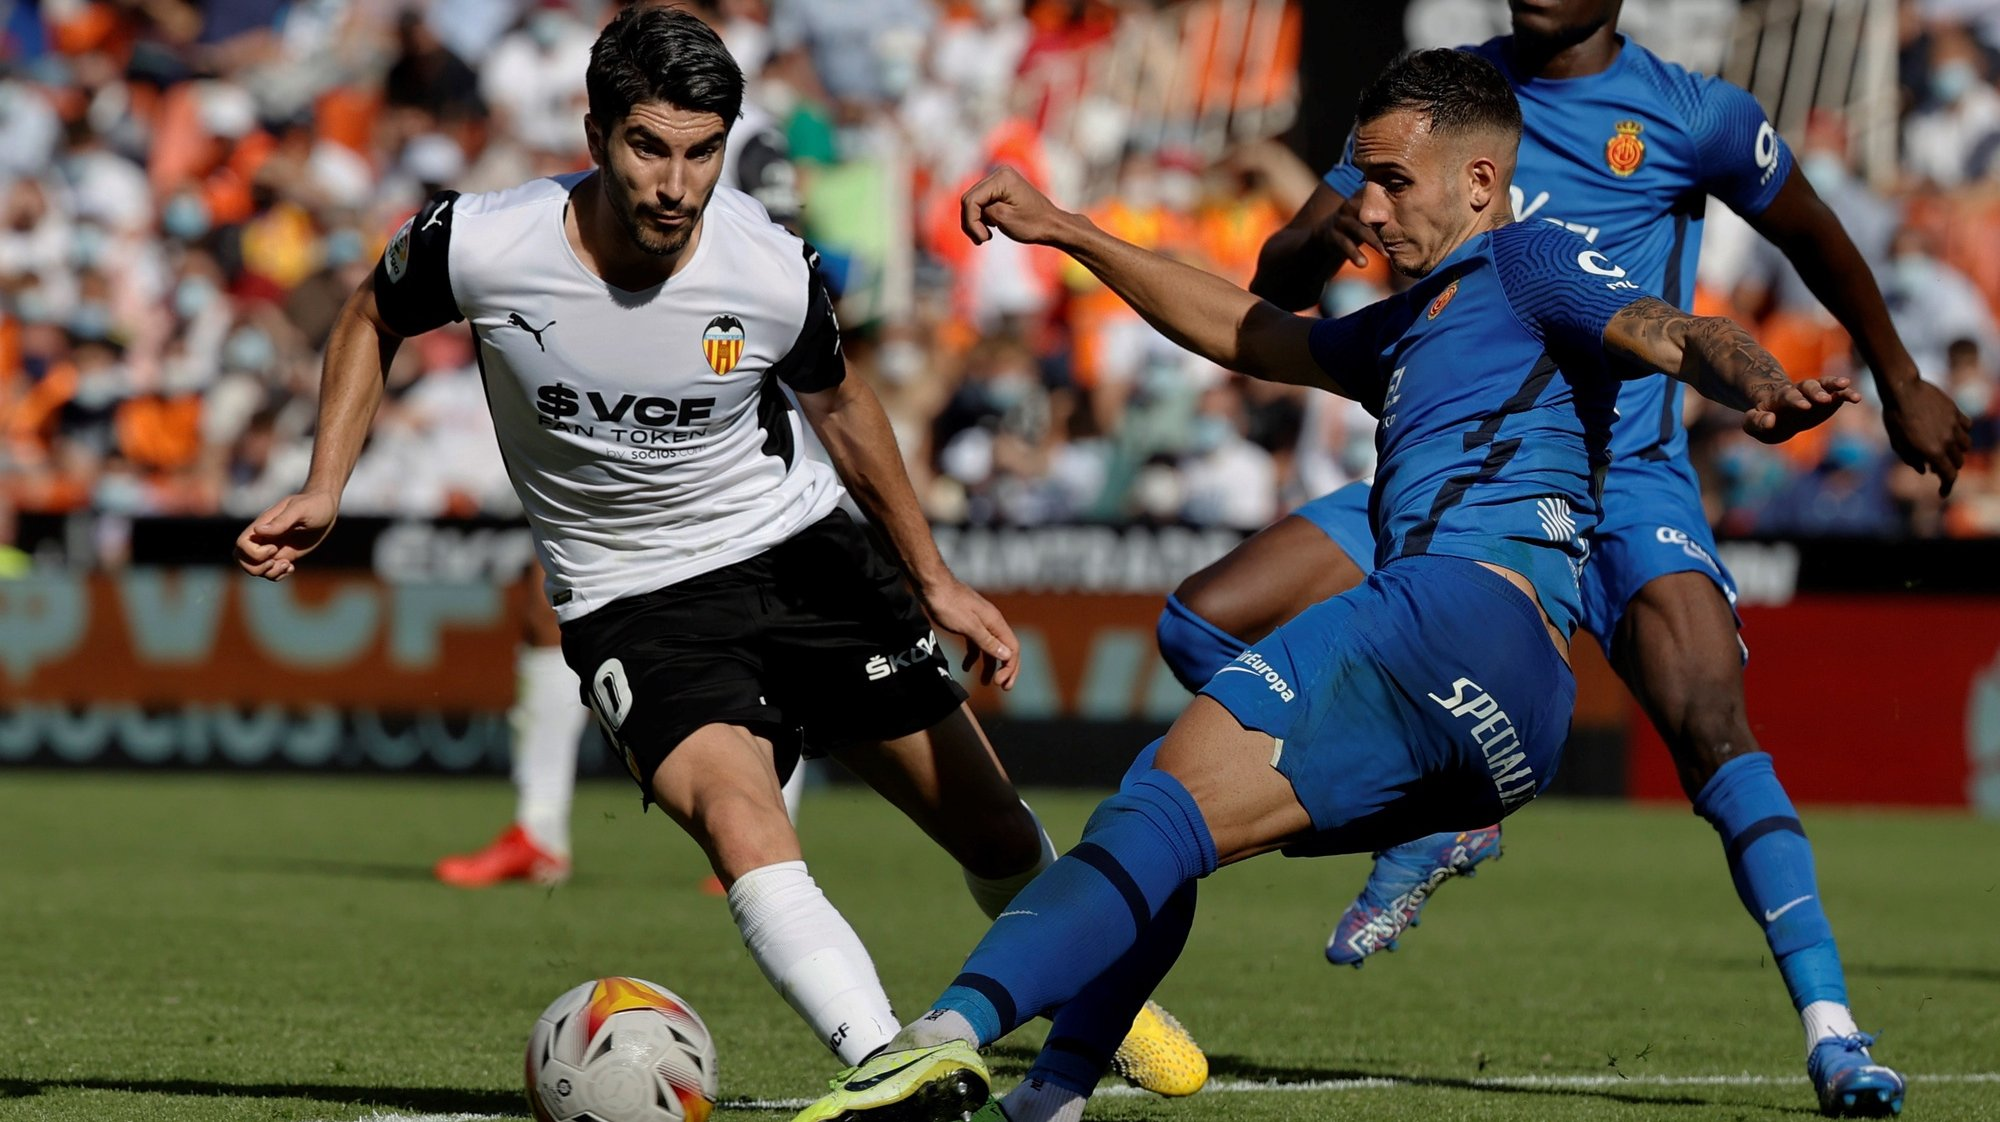 epa09541389 Valencia's Carlos Soler (L) fights for the ball with Franco Matias Russo of Mallorca during the Spanish LaLiga soccer match between Valencia CF and RCD Mallorca  played at Mestalla stadium in Valencia, eastern Spain, 23 October 2021.  EPA/KAI FOERSTERLING